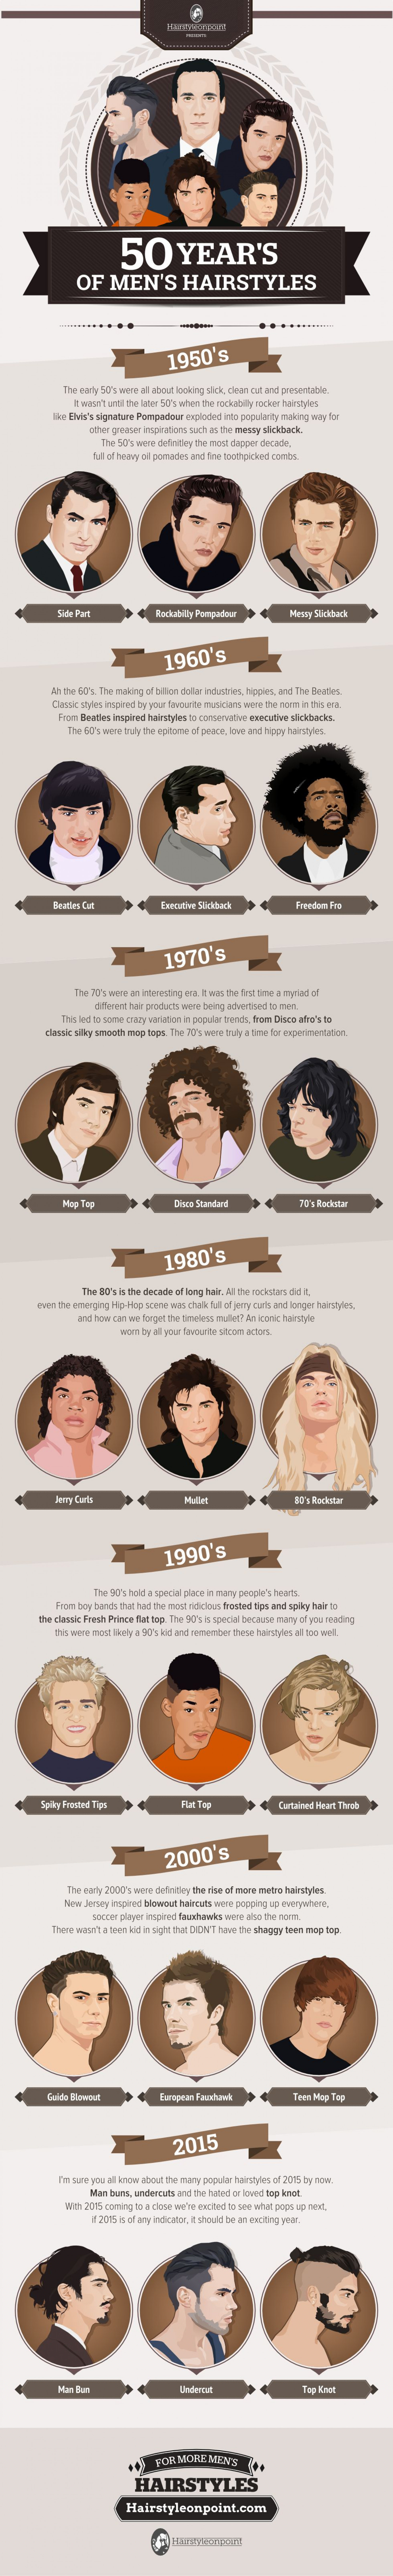 50 Years of Men's Hairstyles Infographic